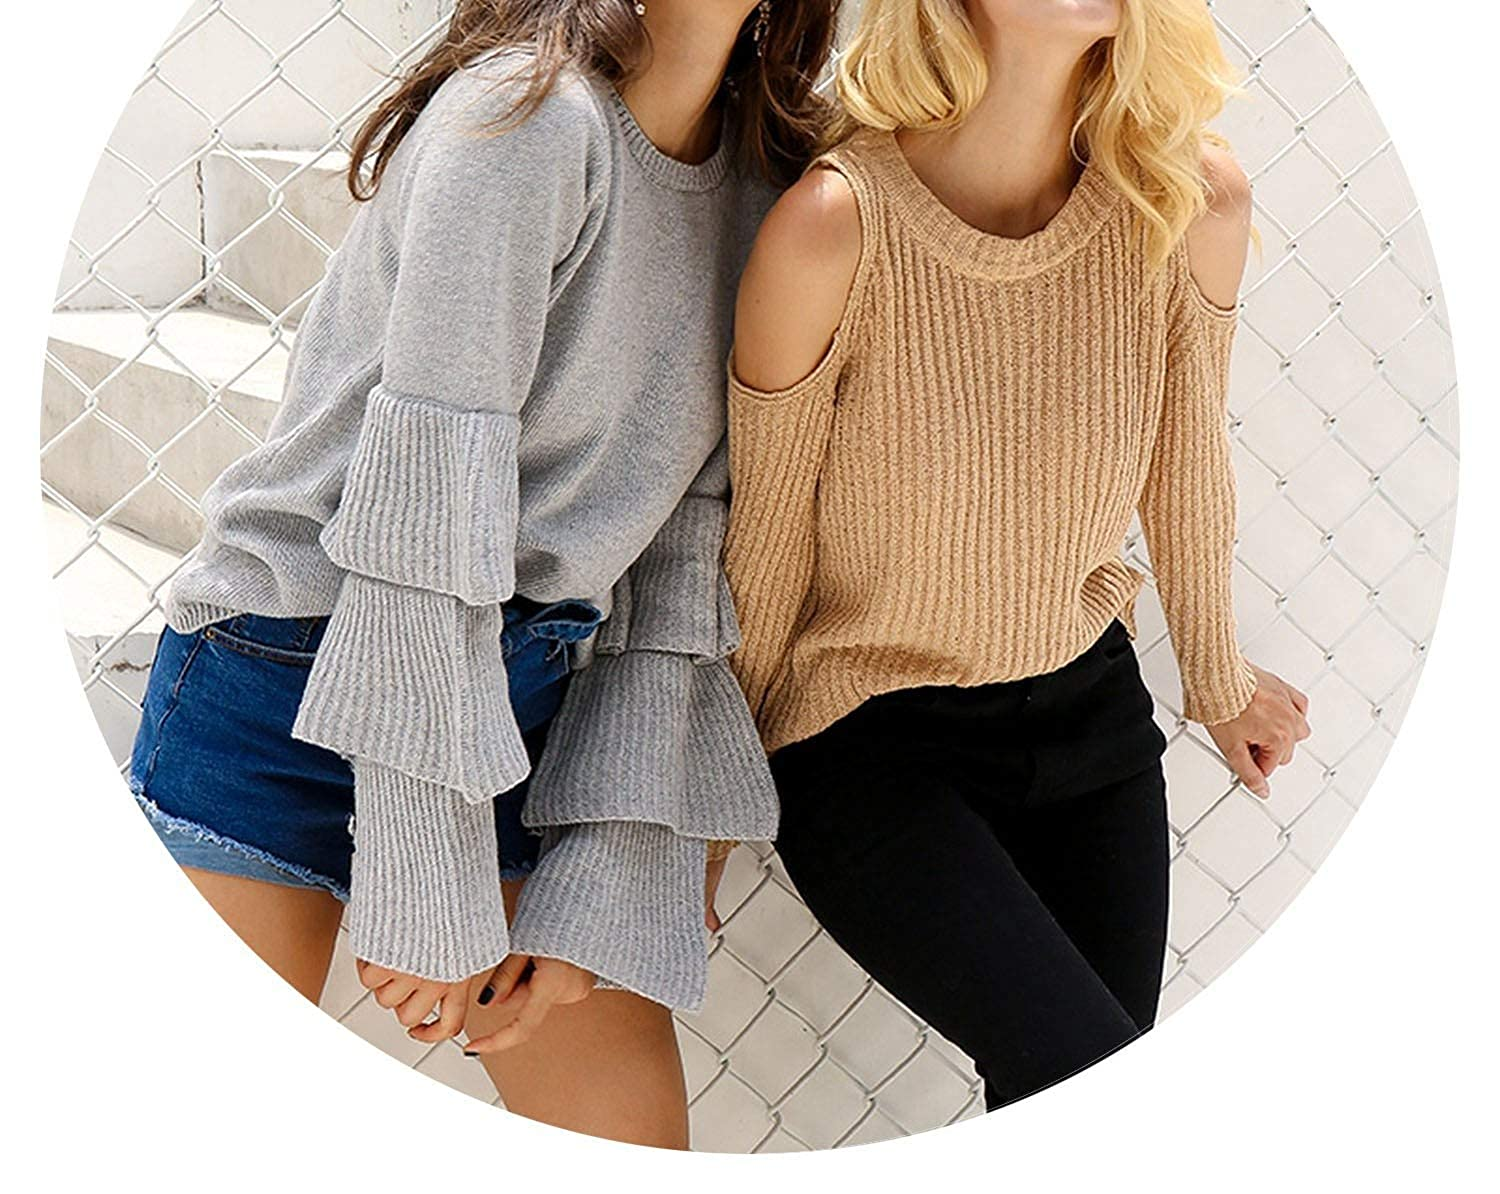 Houfeoans Knitting Ruffles Sweater Women Loose Flare Sleeve Pullover Female Casual Party Knit Pull Jumper